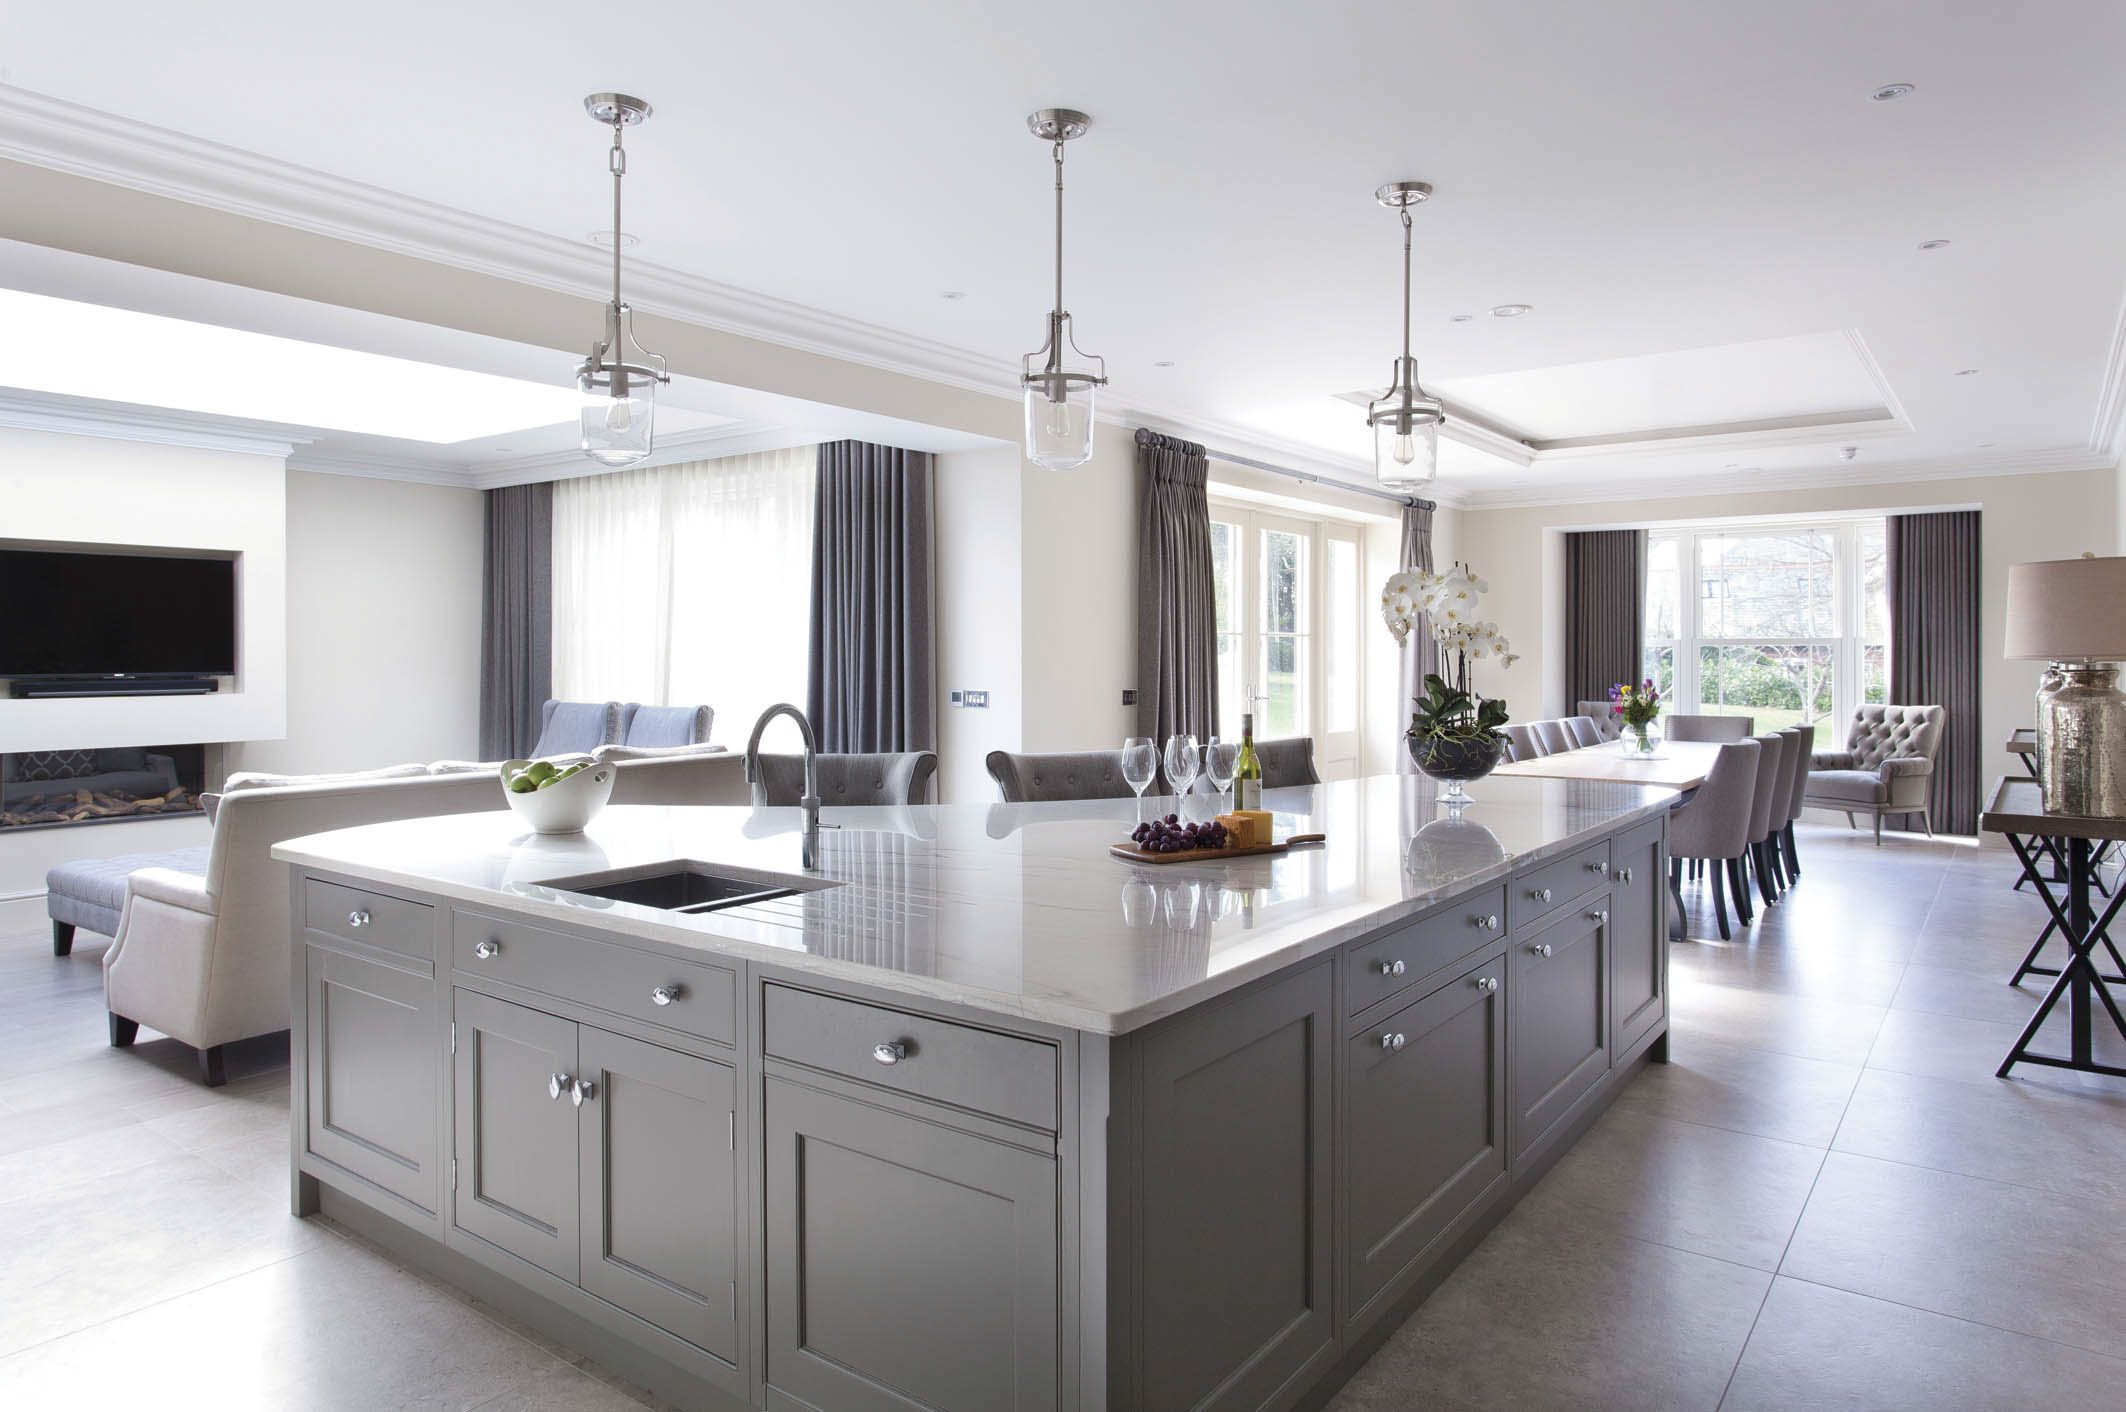 Canavan Interiors Kitchen Collection, Including Contemporary German Kitchens,  Classic Handpainted Kitchens And Bespoke Furniture. Locations Include  Belfast ...